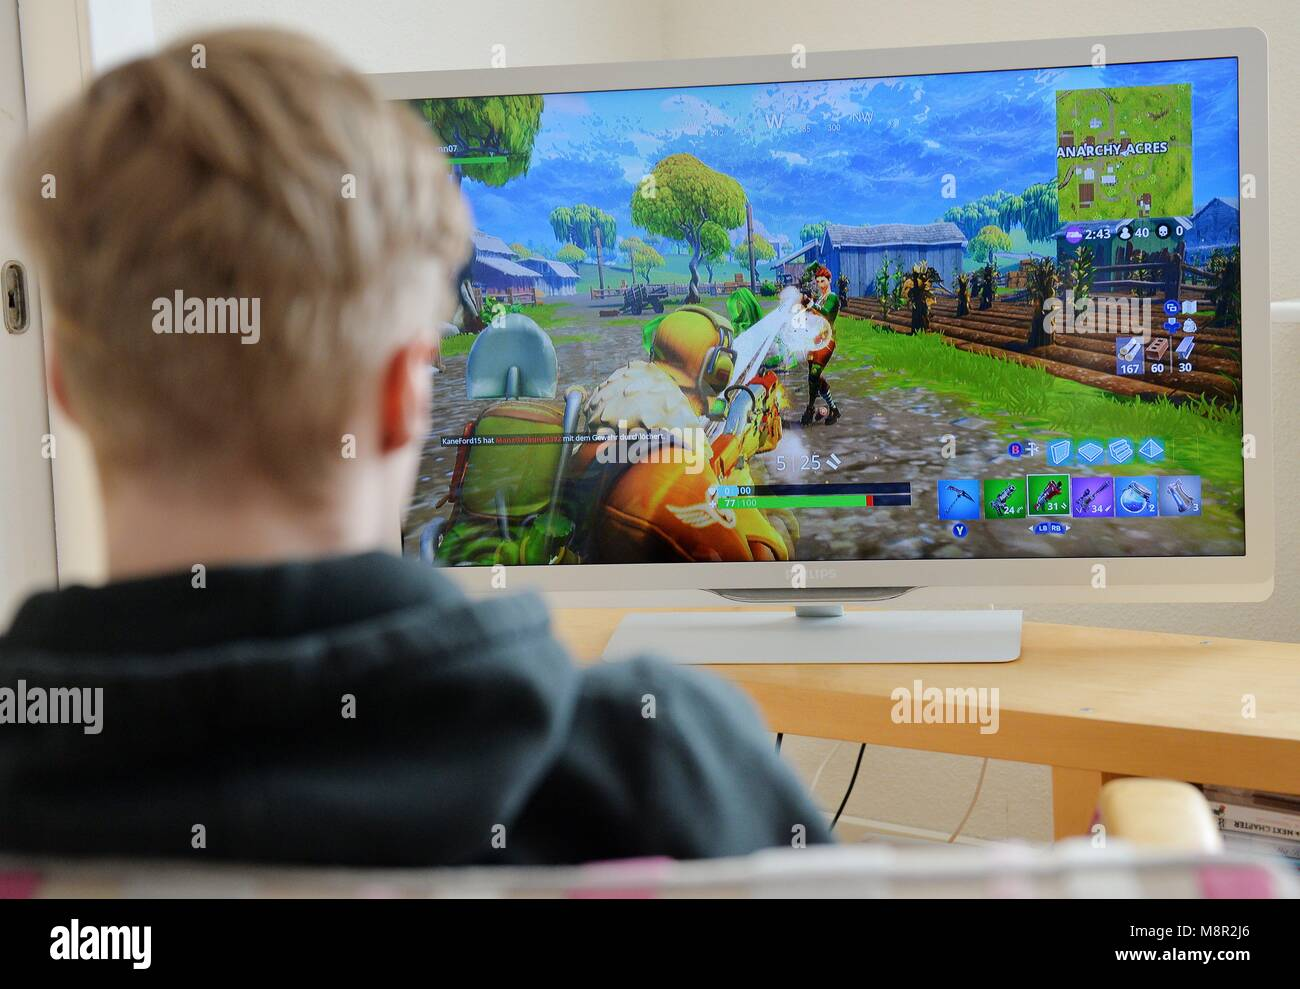 Fortnite Stock Photos Fortnite Stock Images Alamy